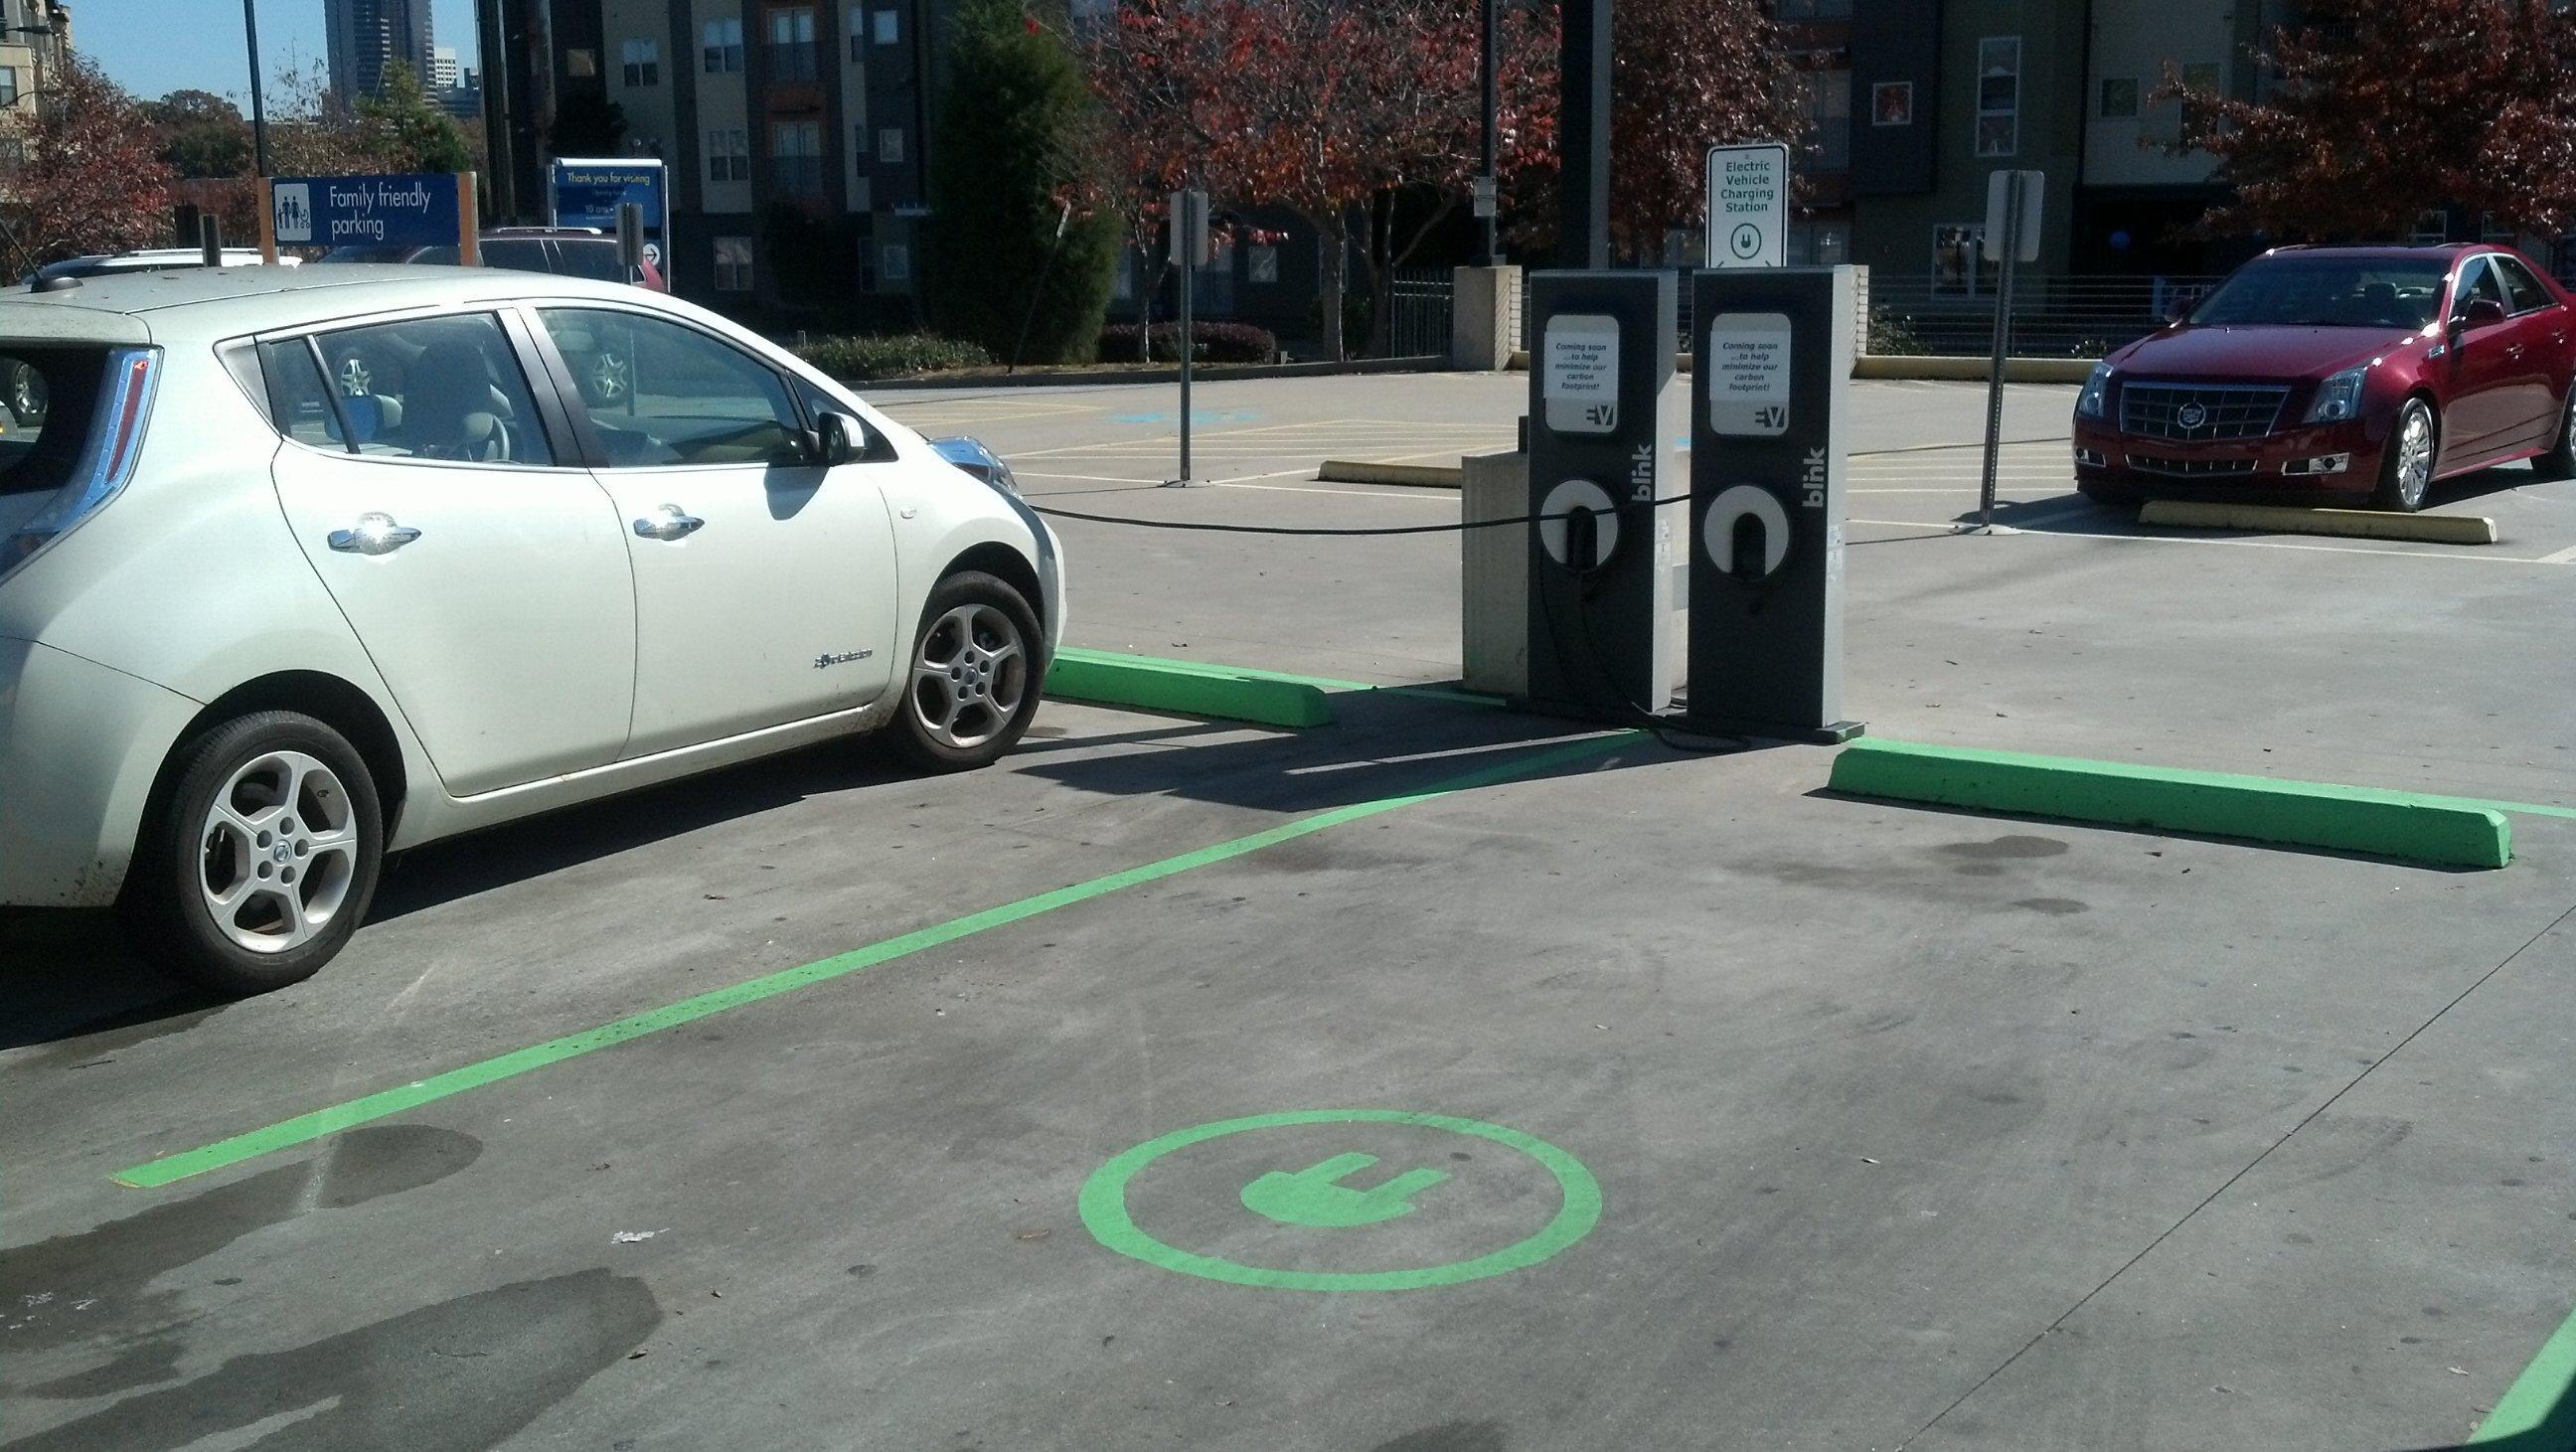 Ikea Plugs In 4 Electric Vehicle Charging Stations Atlanta Ga Business Wire